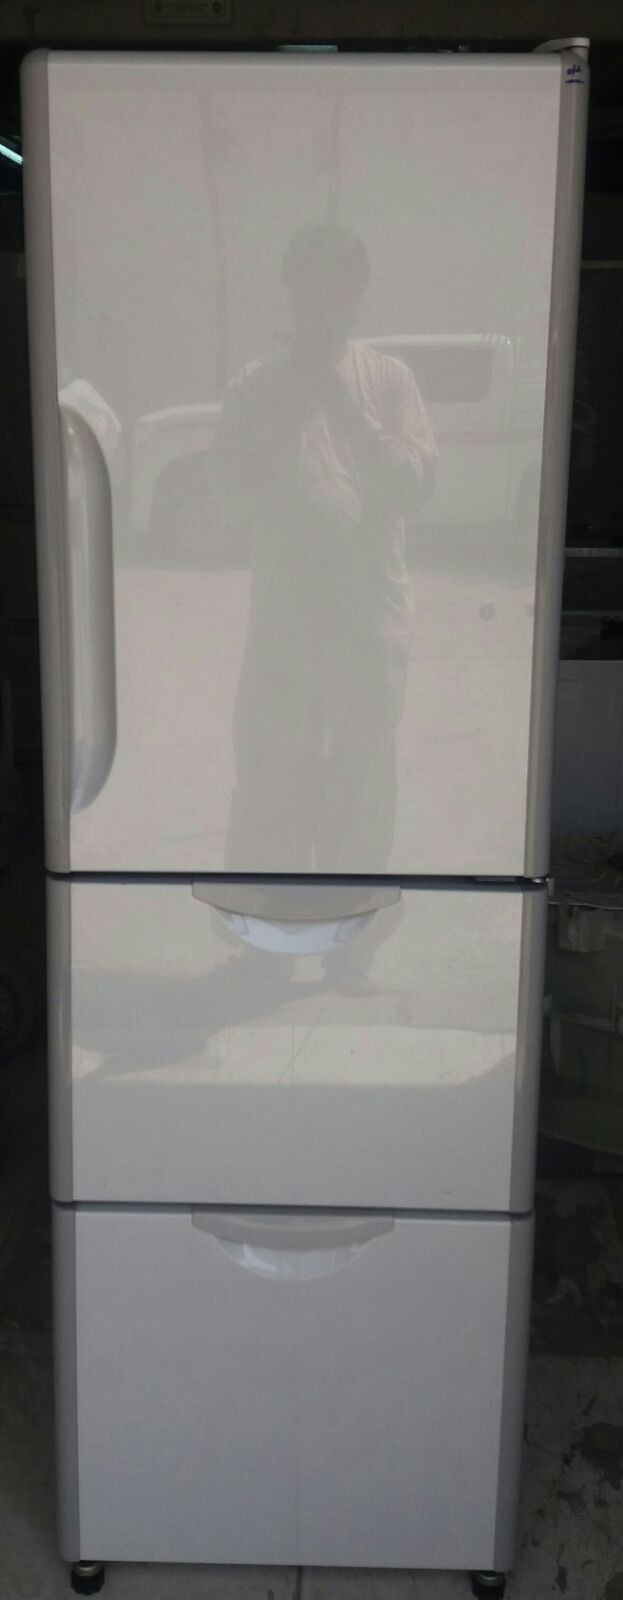 The freezer is less frequently accessed, and as such, located at the bottom of the spendingcritics.ml Shipping· Name Brands· Excellent Service· Huge Selection.